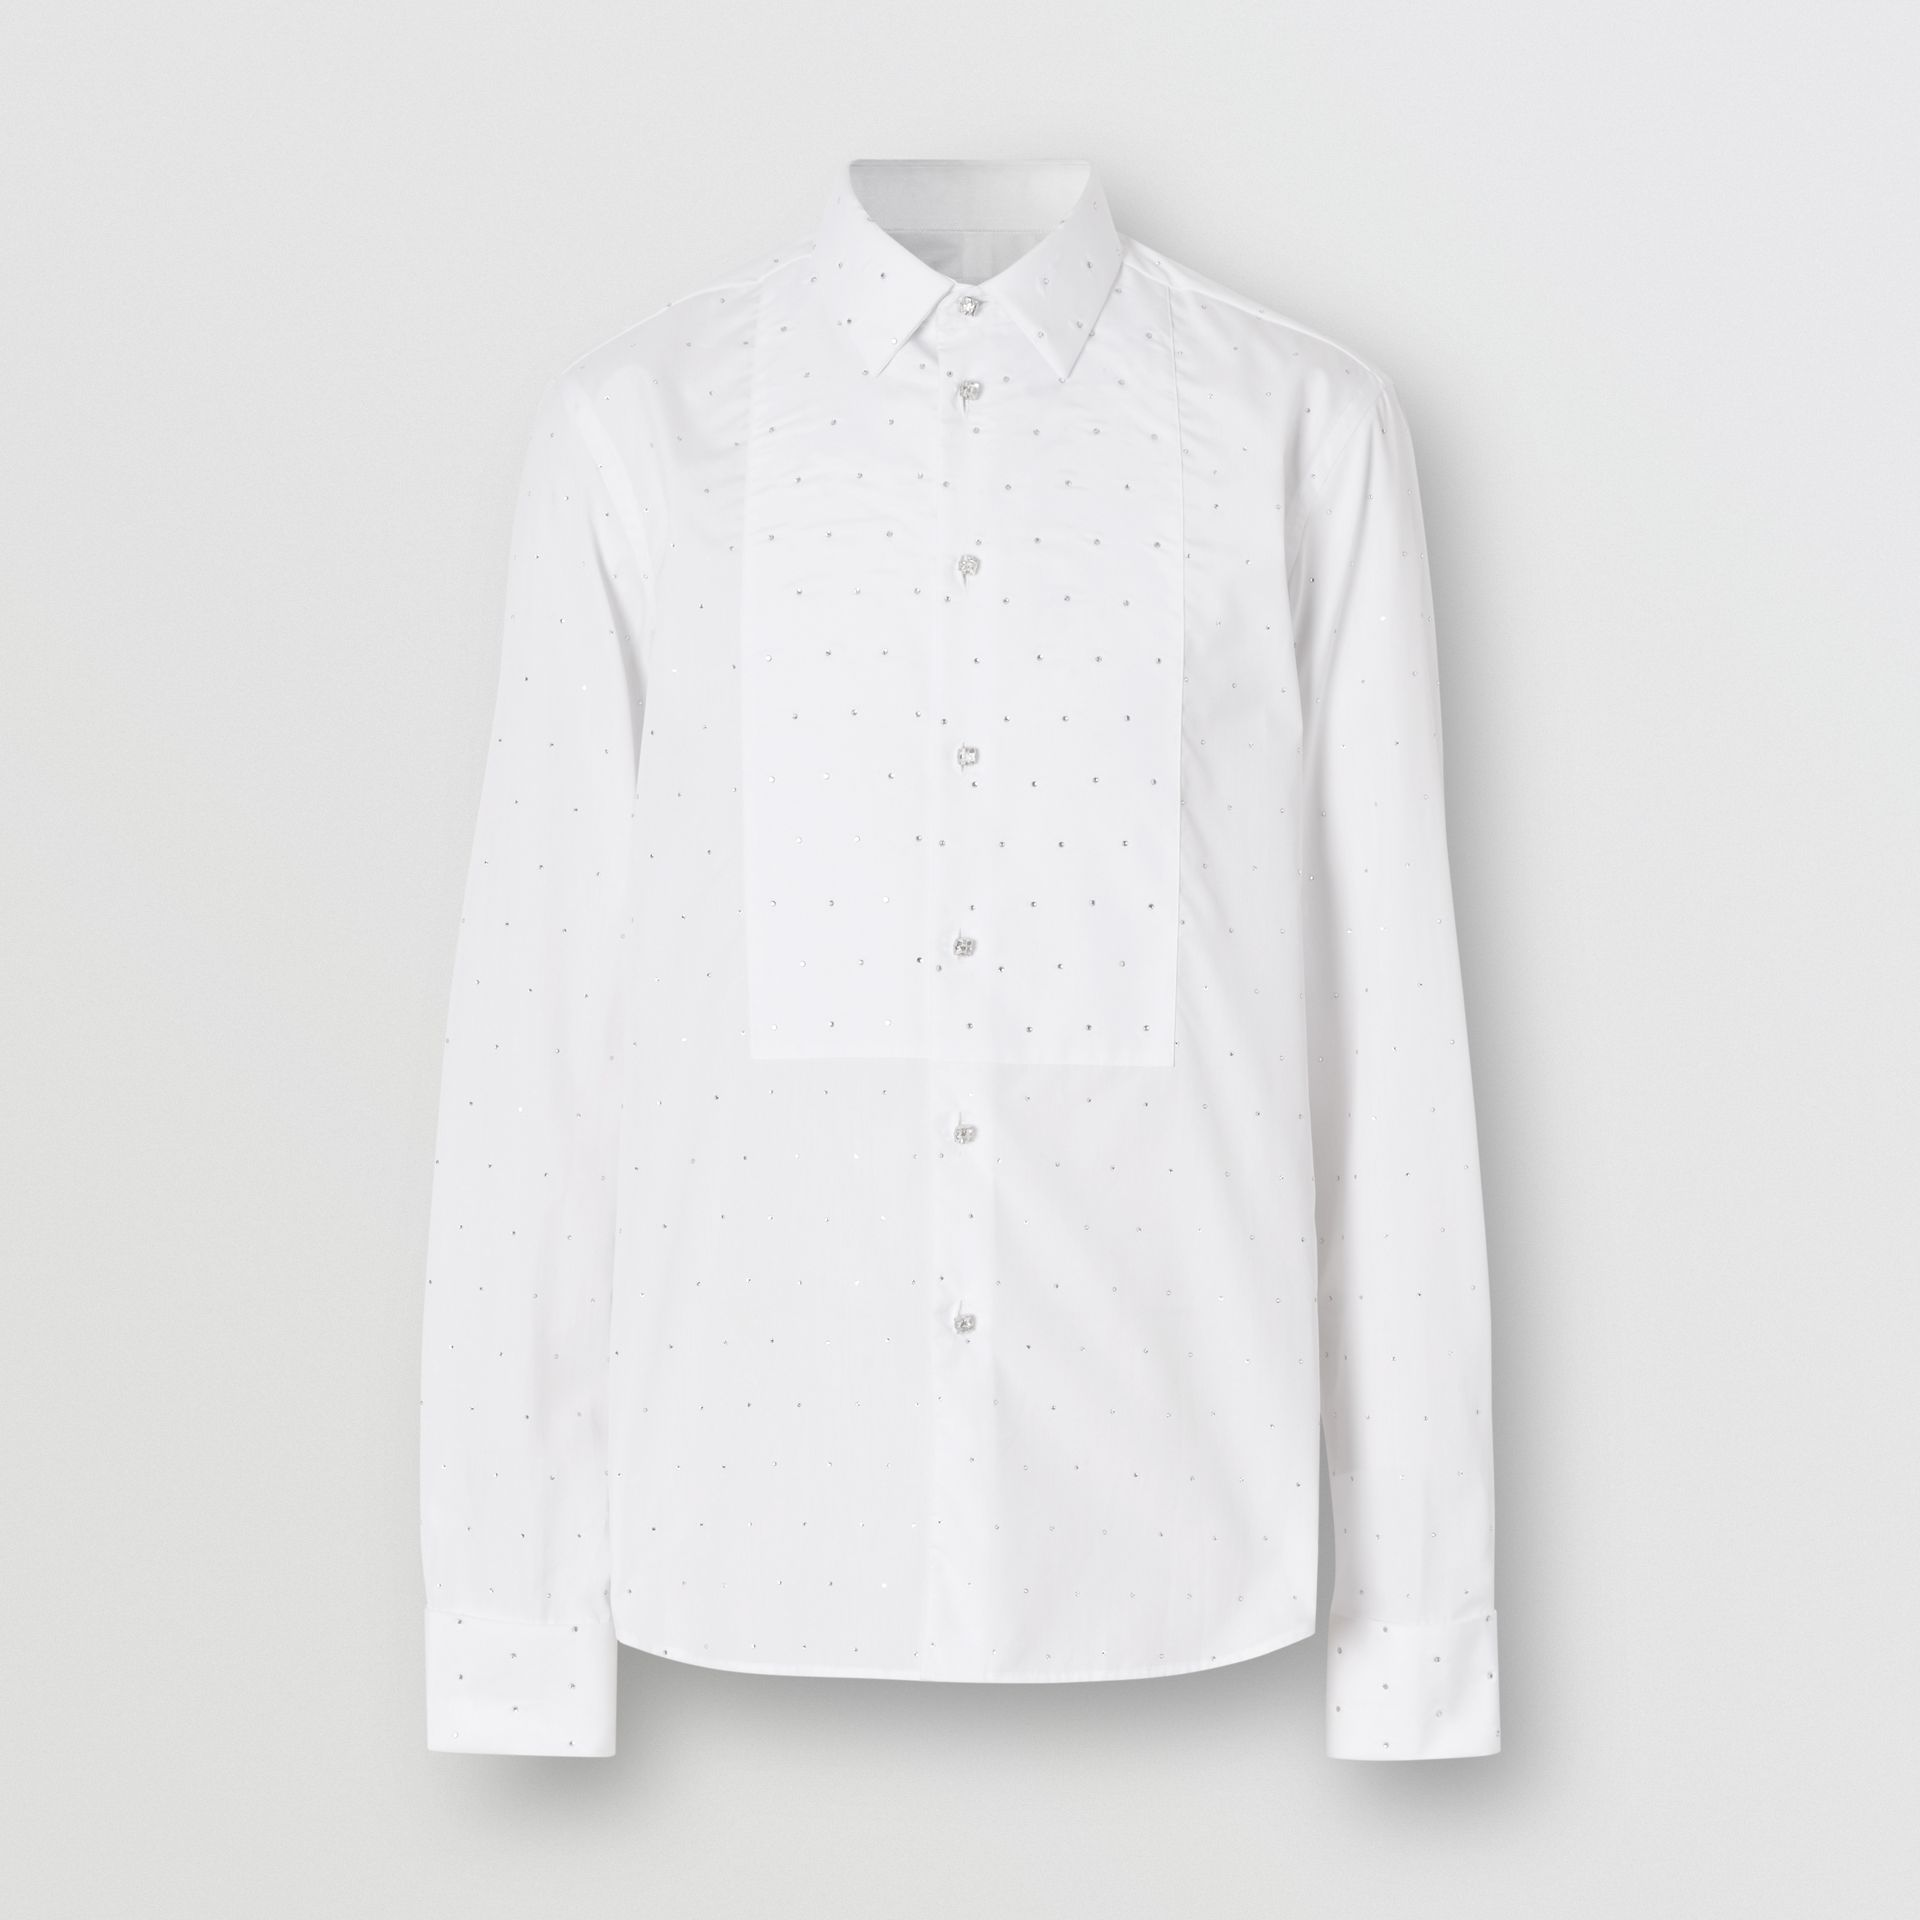 Embellished Cotton Poplin Dress Shirt in Optic White - Men | Burberry - gallery image 3